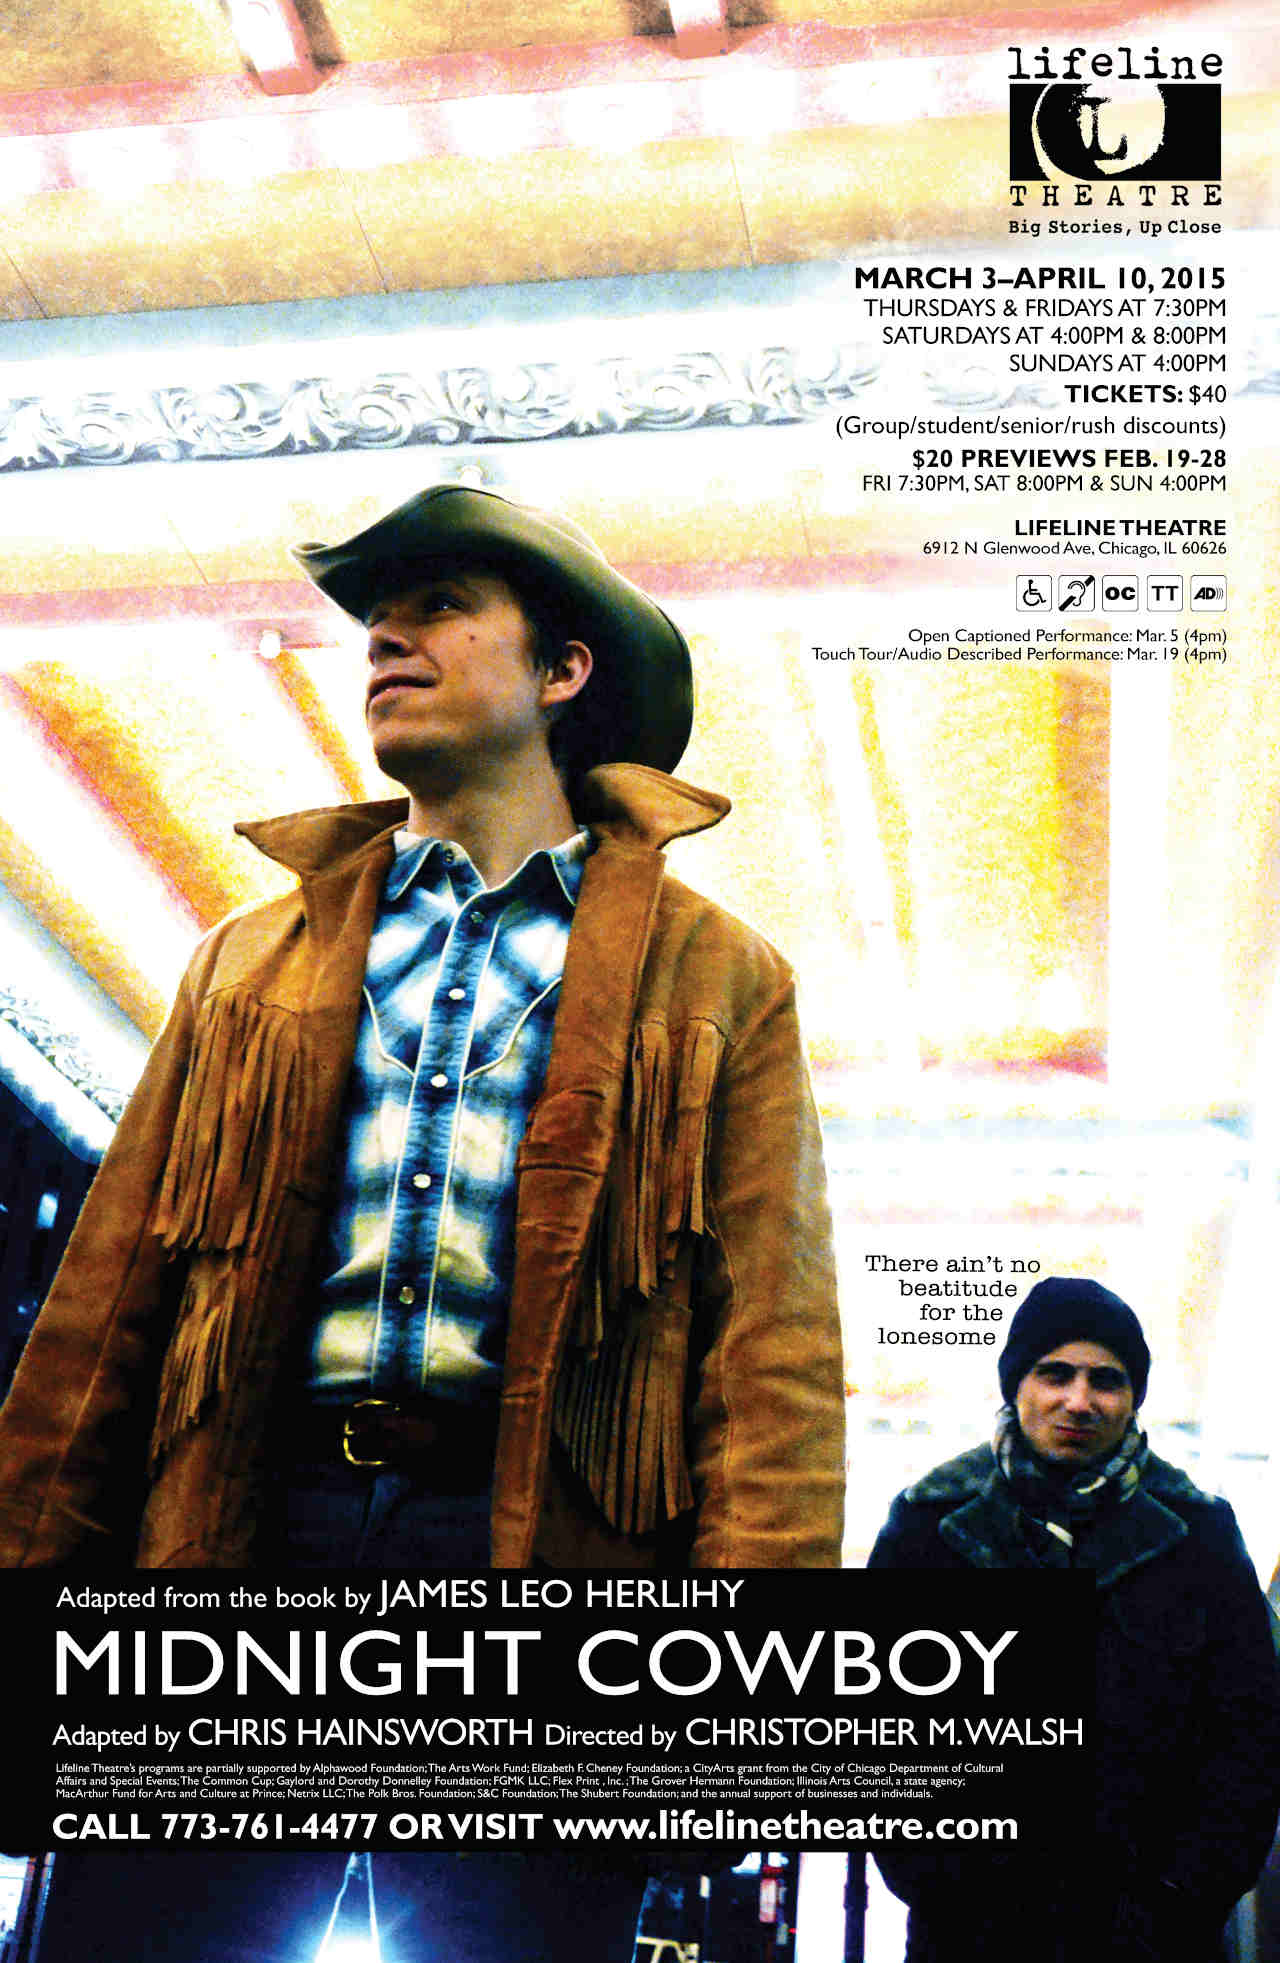 MIDNIGHT COWBOY (Lifeline Theatre, 2016)